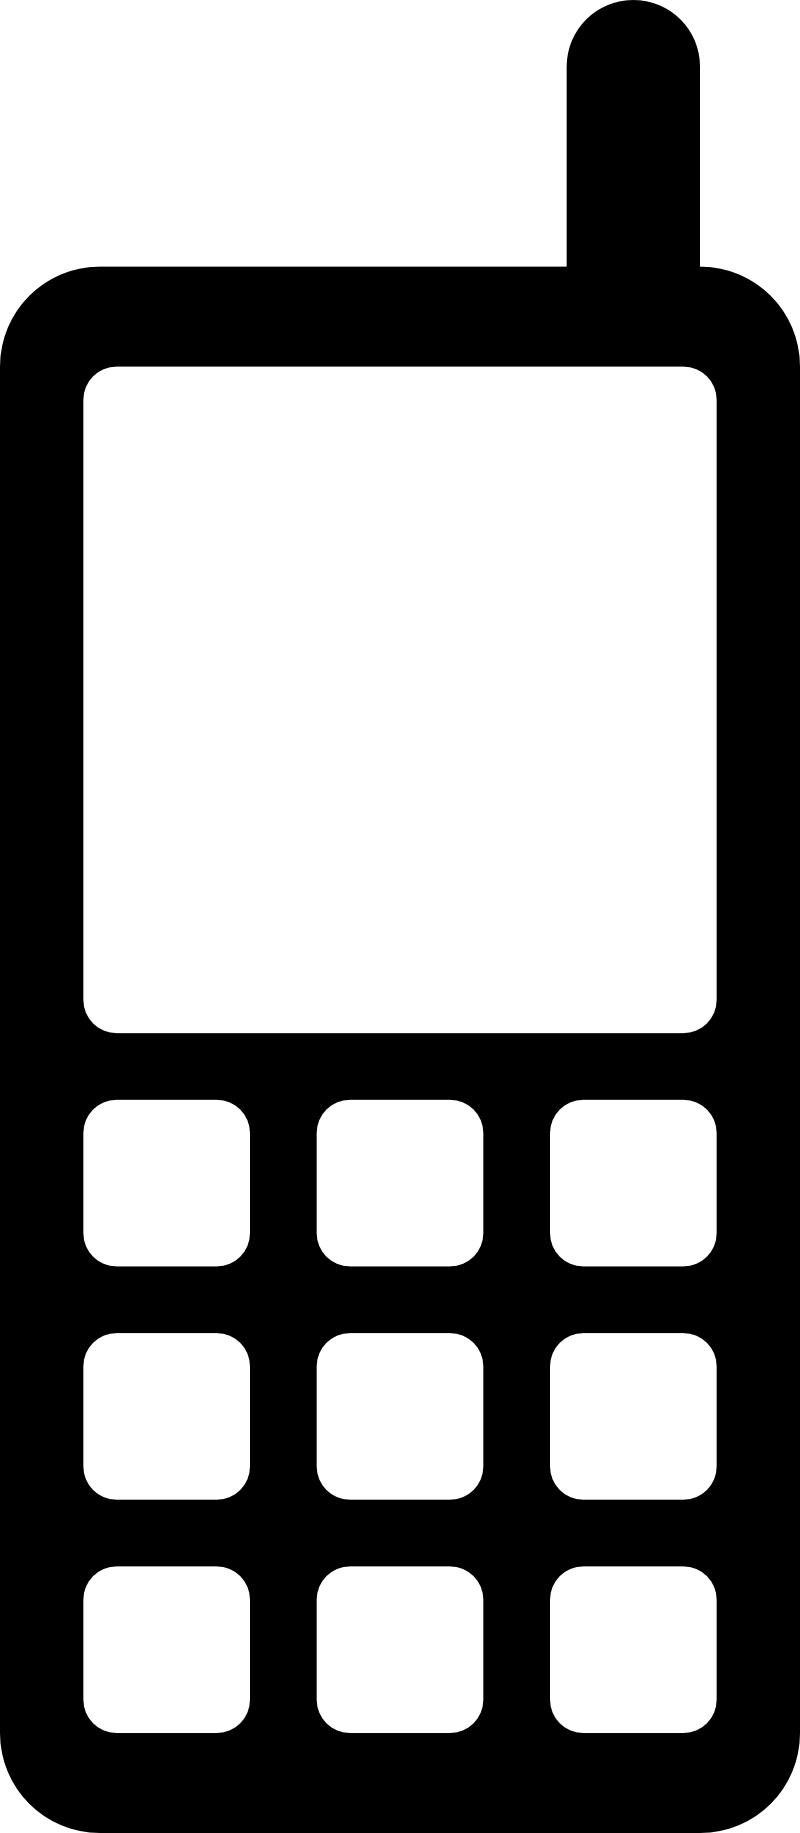 Mobile Phone Icon Symbols